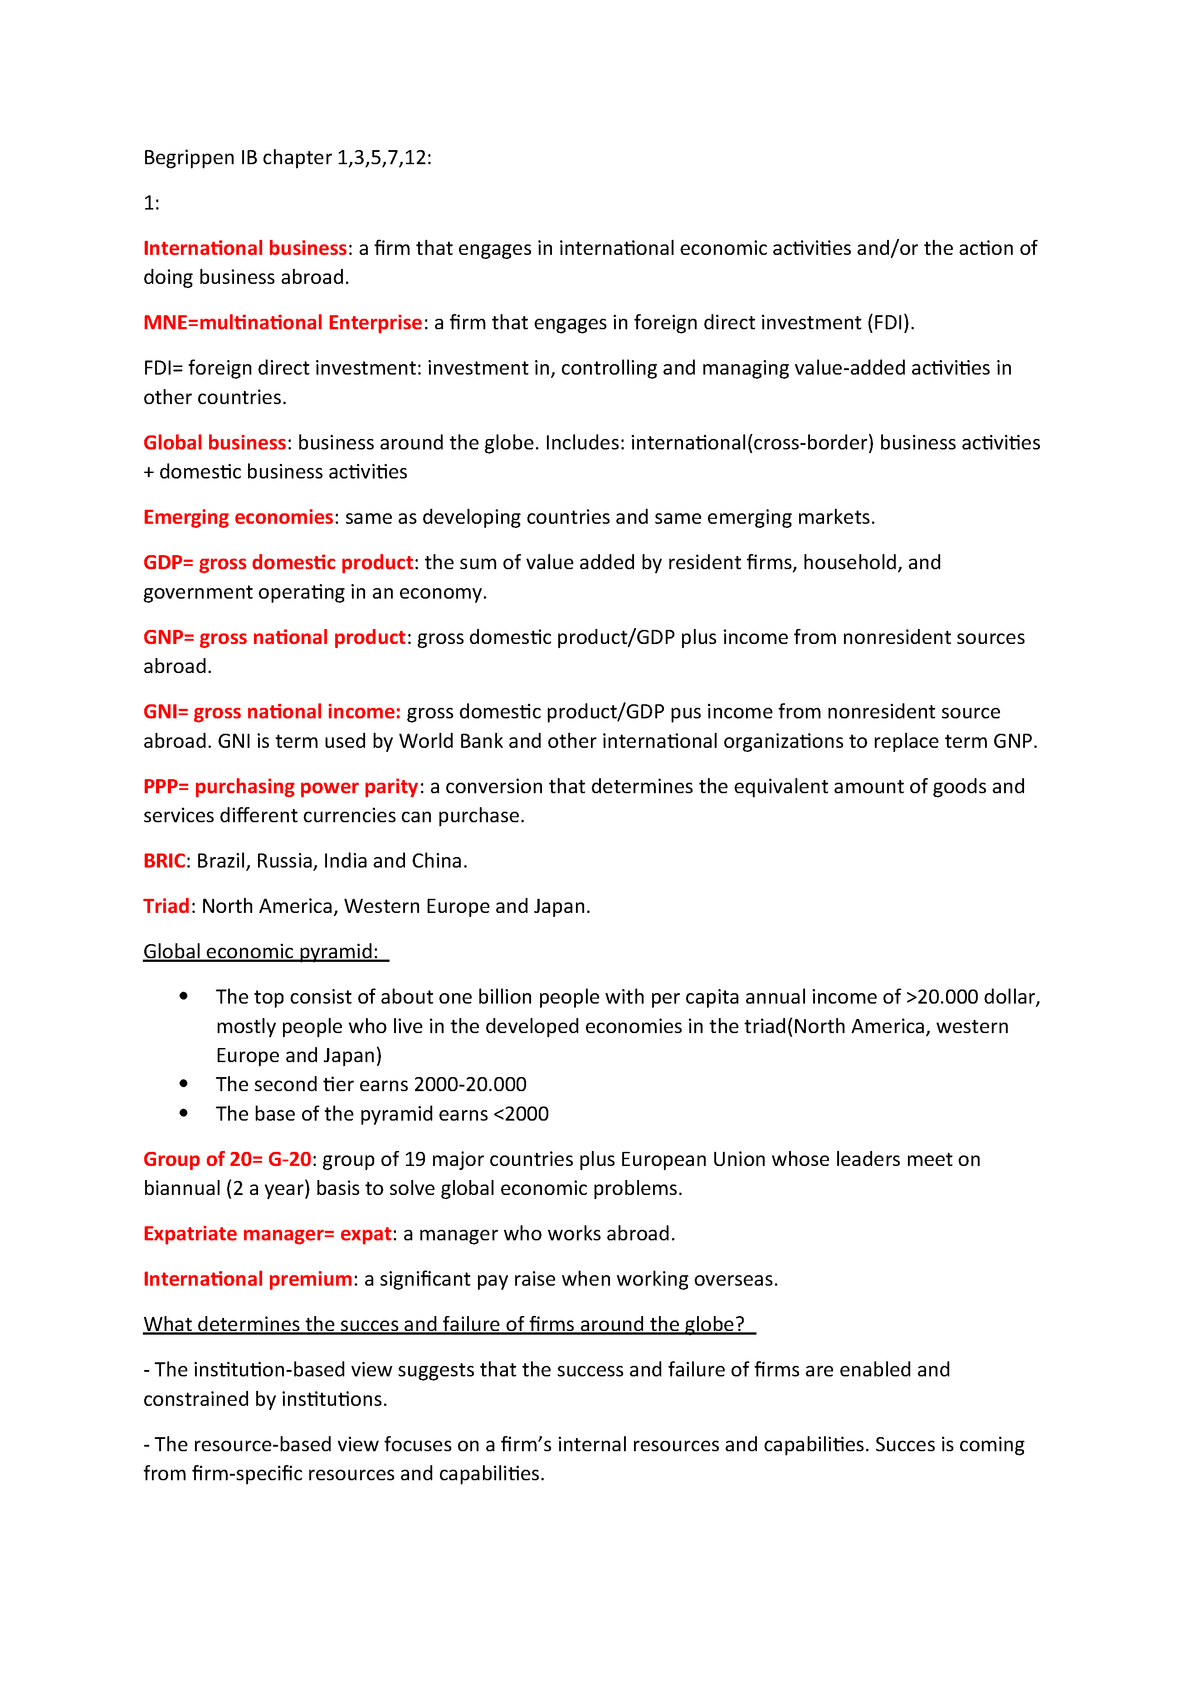 IB chater 1,3,5,7,12 - Summary Introduction to International